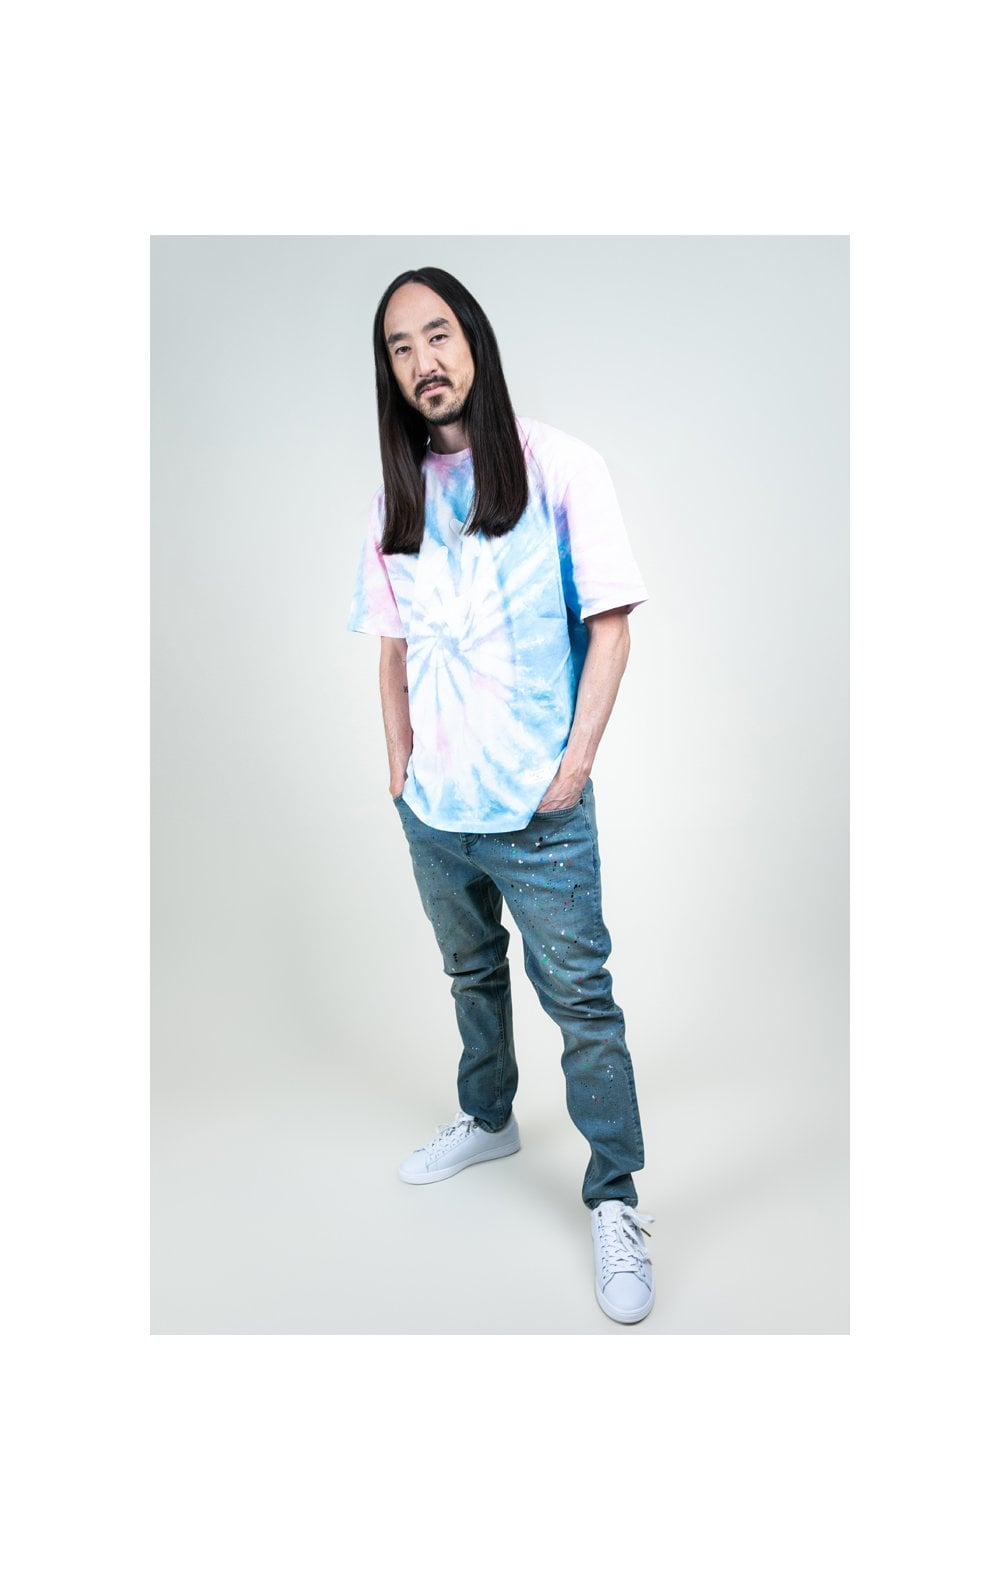 Load image into Gallery viewer, SikSilk X Steve Aoki Loose Fit Riot Denims - Light Wash (5)